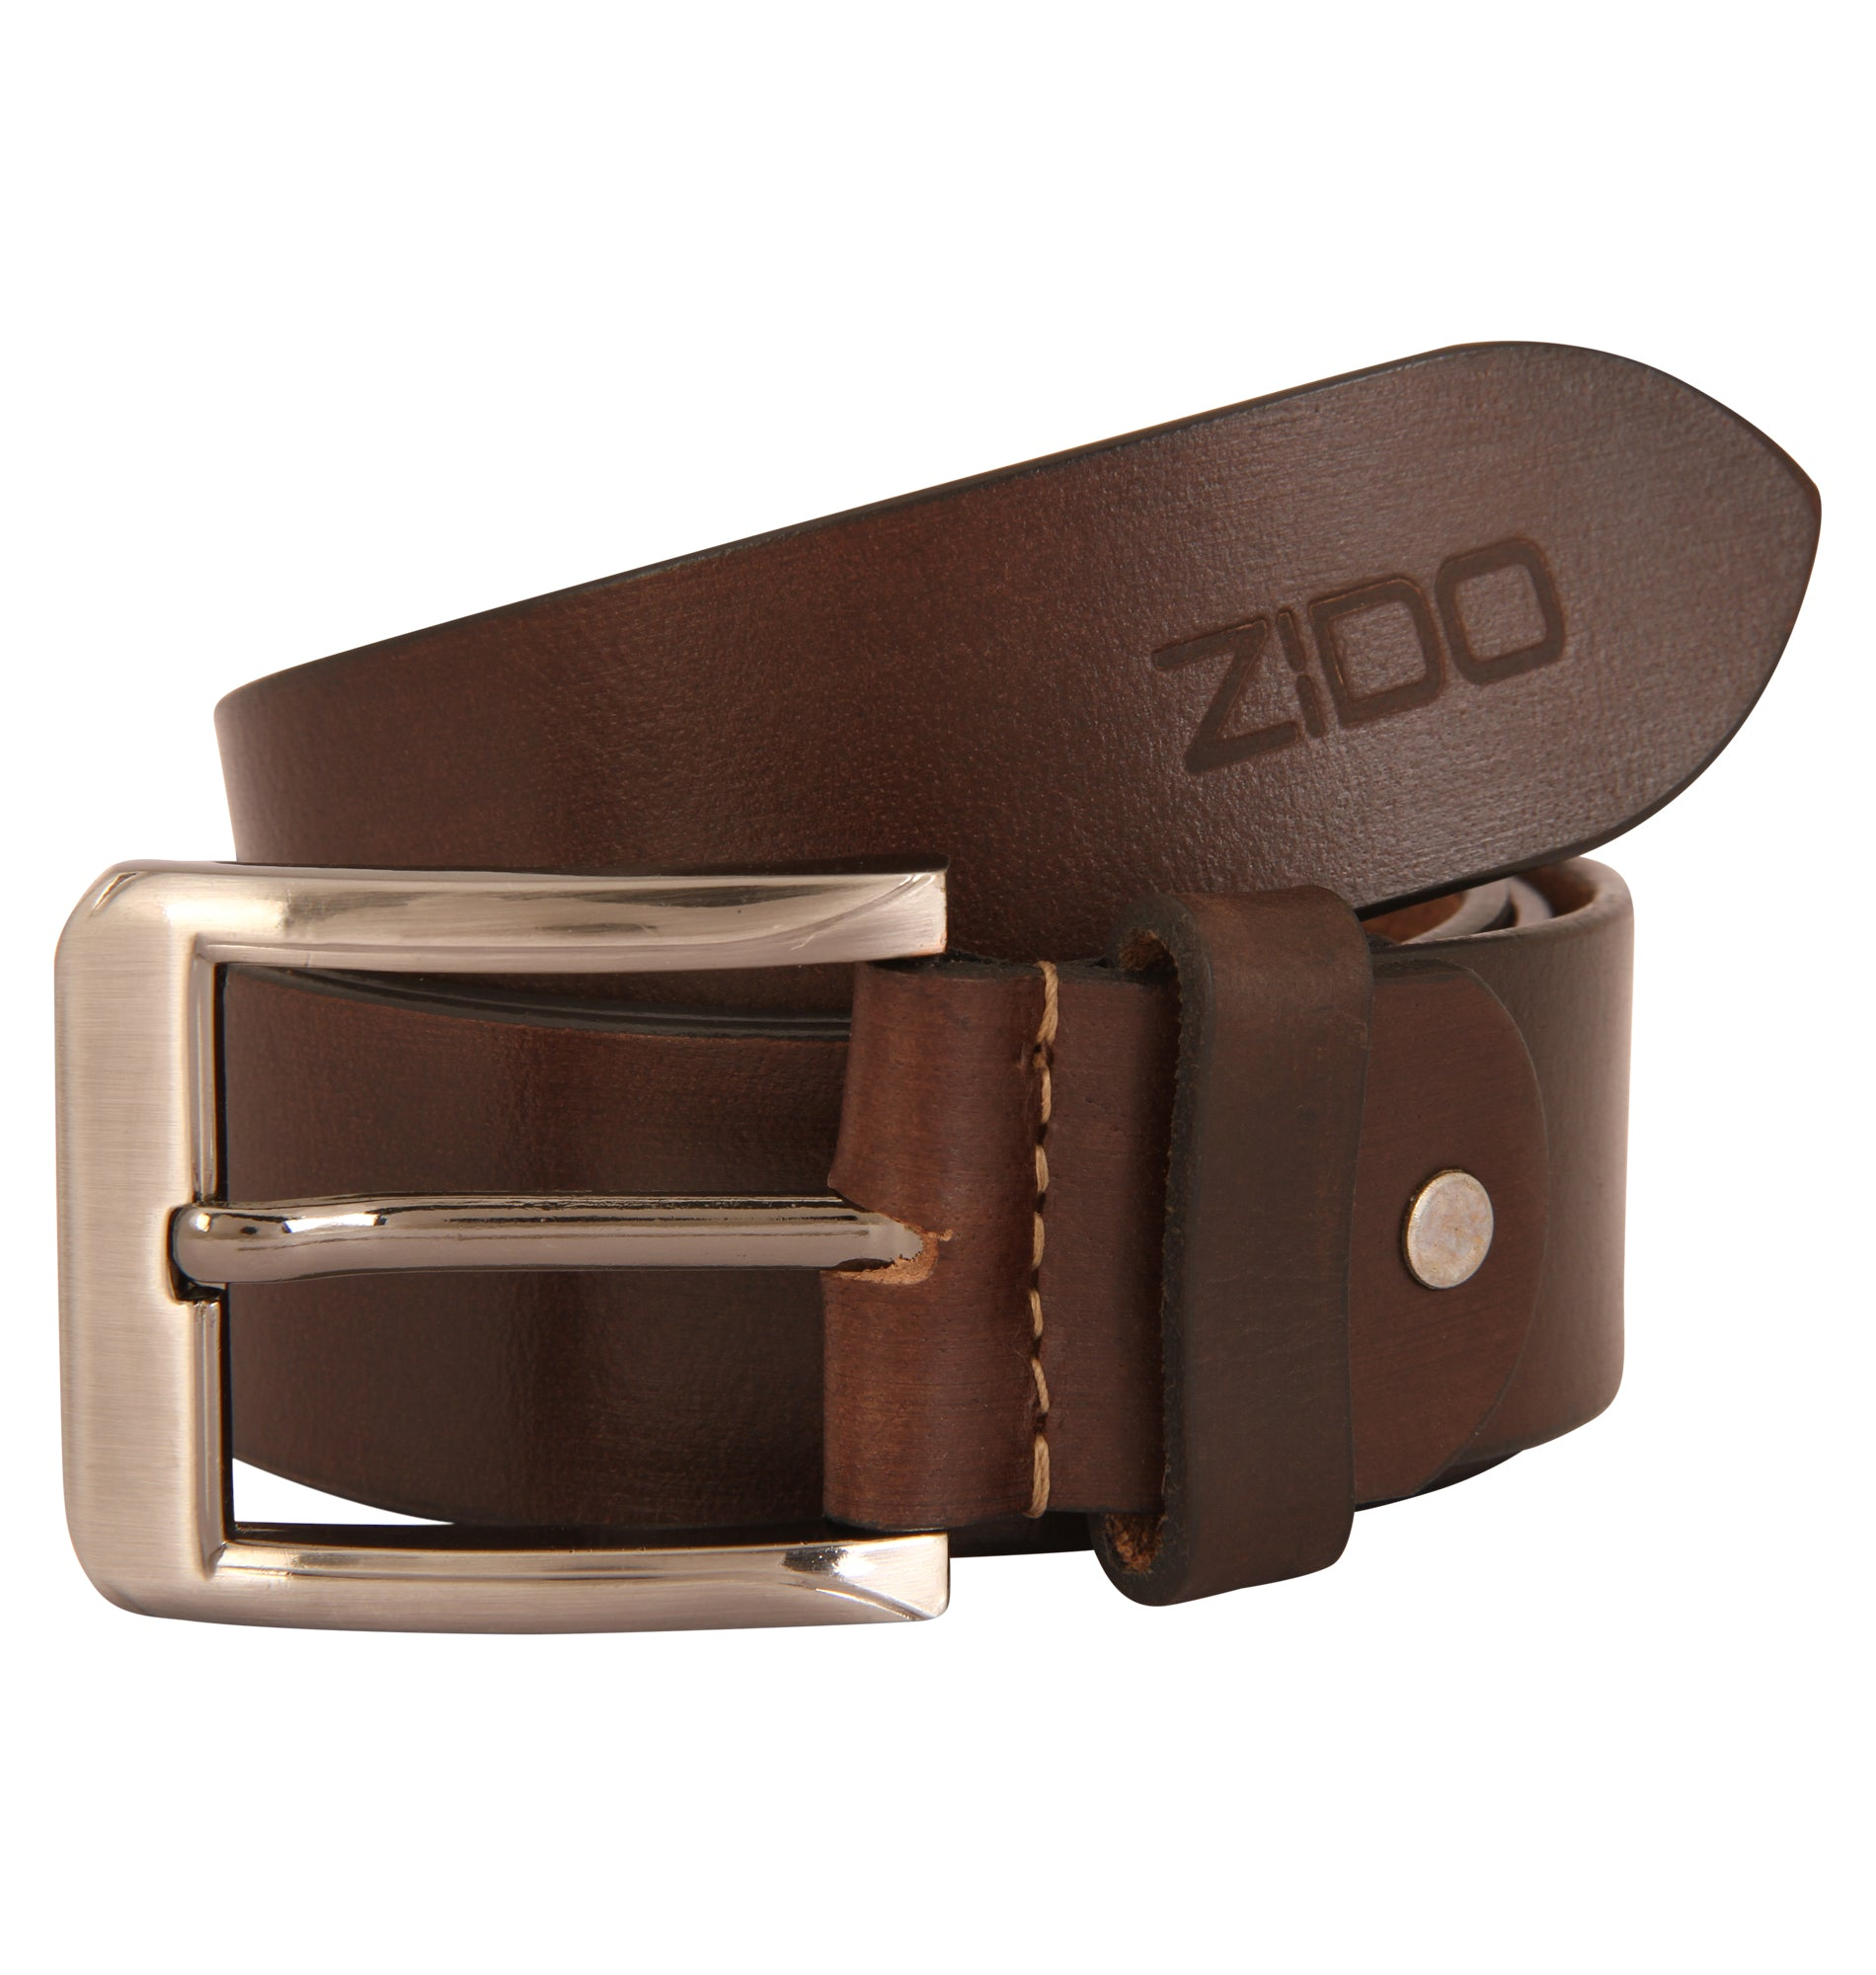 Zido Belt for Men BLT038/1